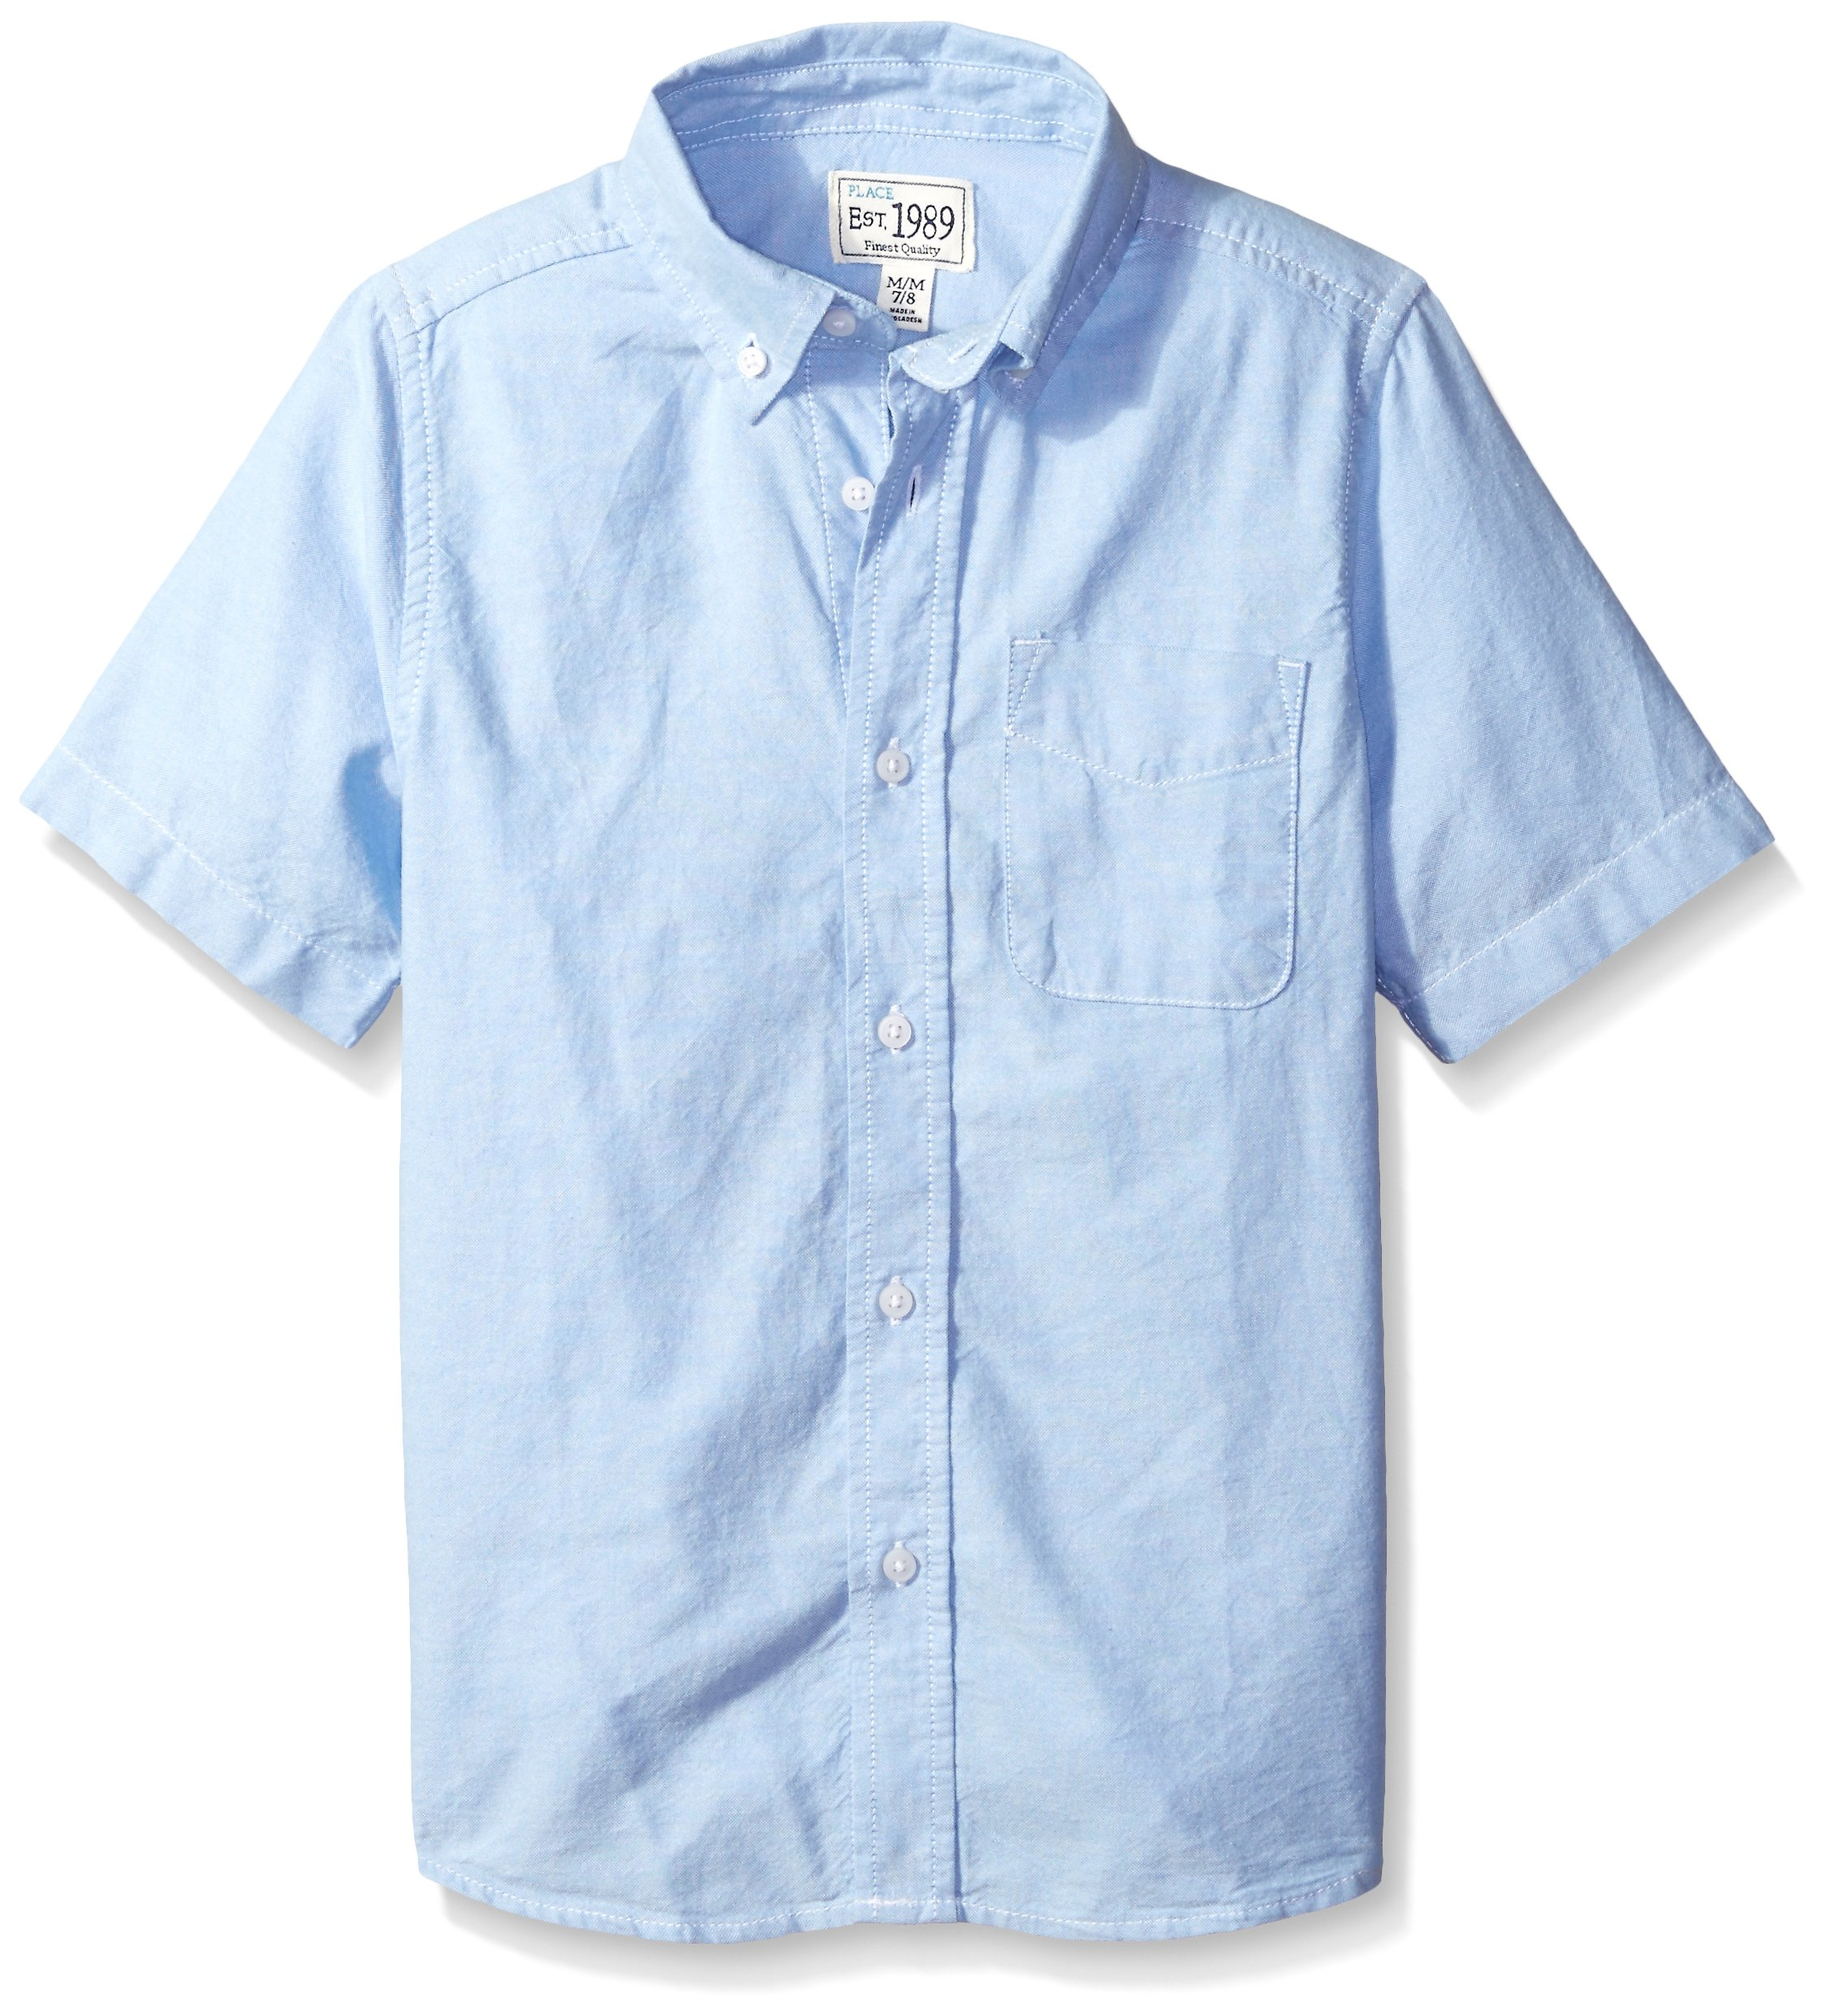 The Children's Place Little Boys' Short Sleeve Uniform Oxford Shirt, Ltbluoxfrd 4765, Small/5/6